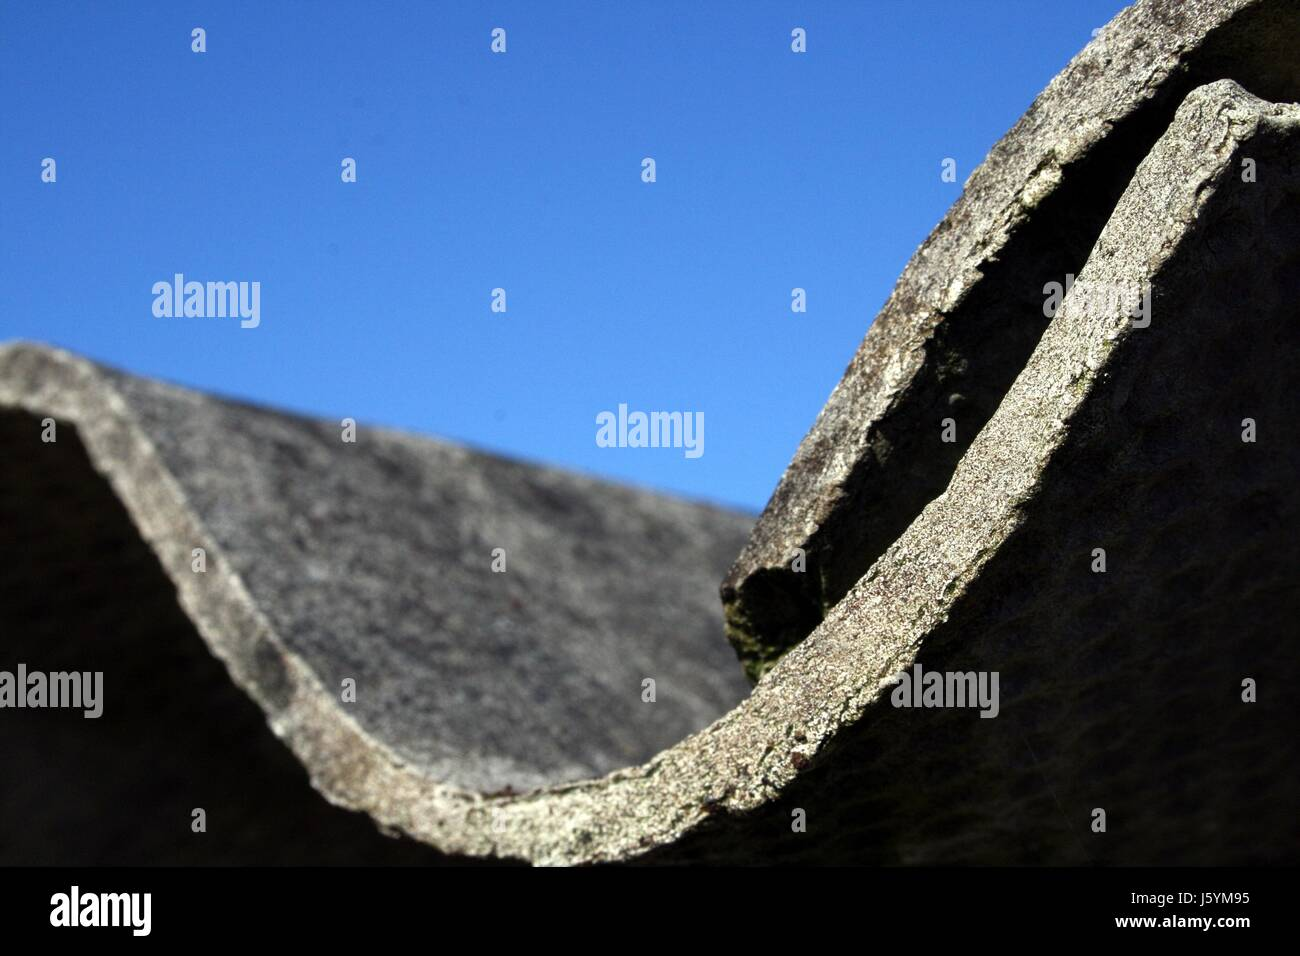 Asbestos Roofs Stock Photos Amp Asbestos Roofs Stock Images